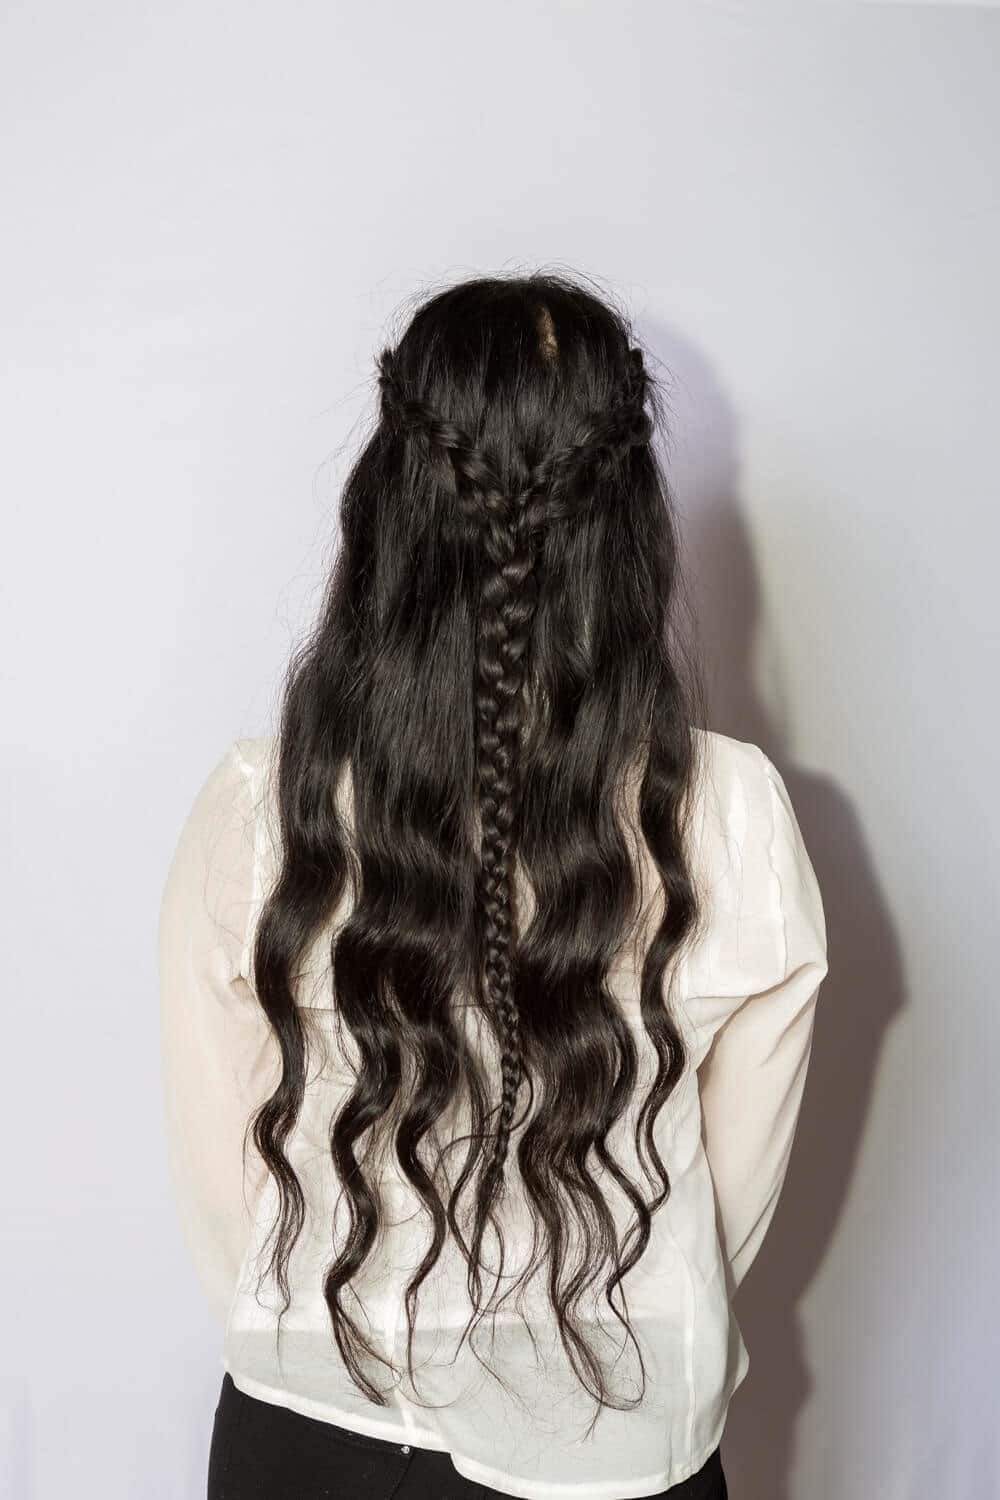 Two Pronged Braids Medieval Hairstyles Medieval Hairstyles Hair Styles Wedding Hair Down